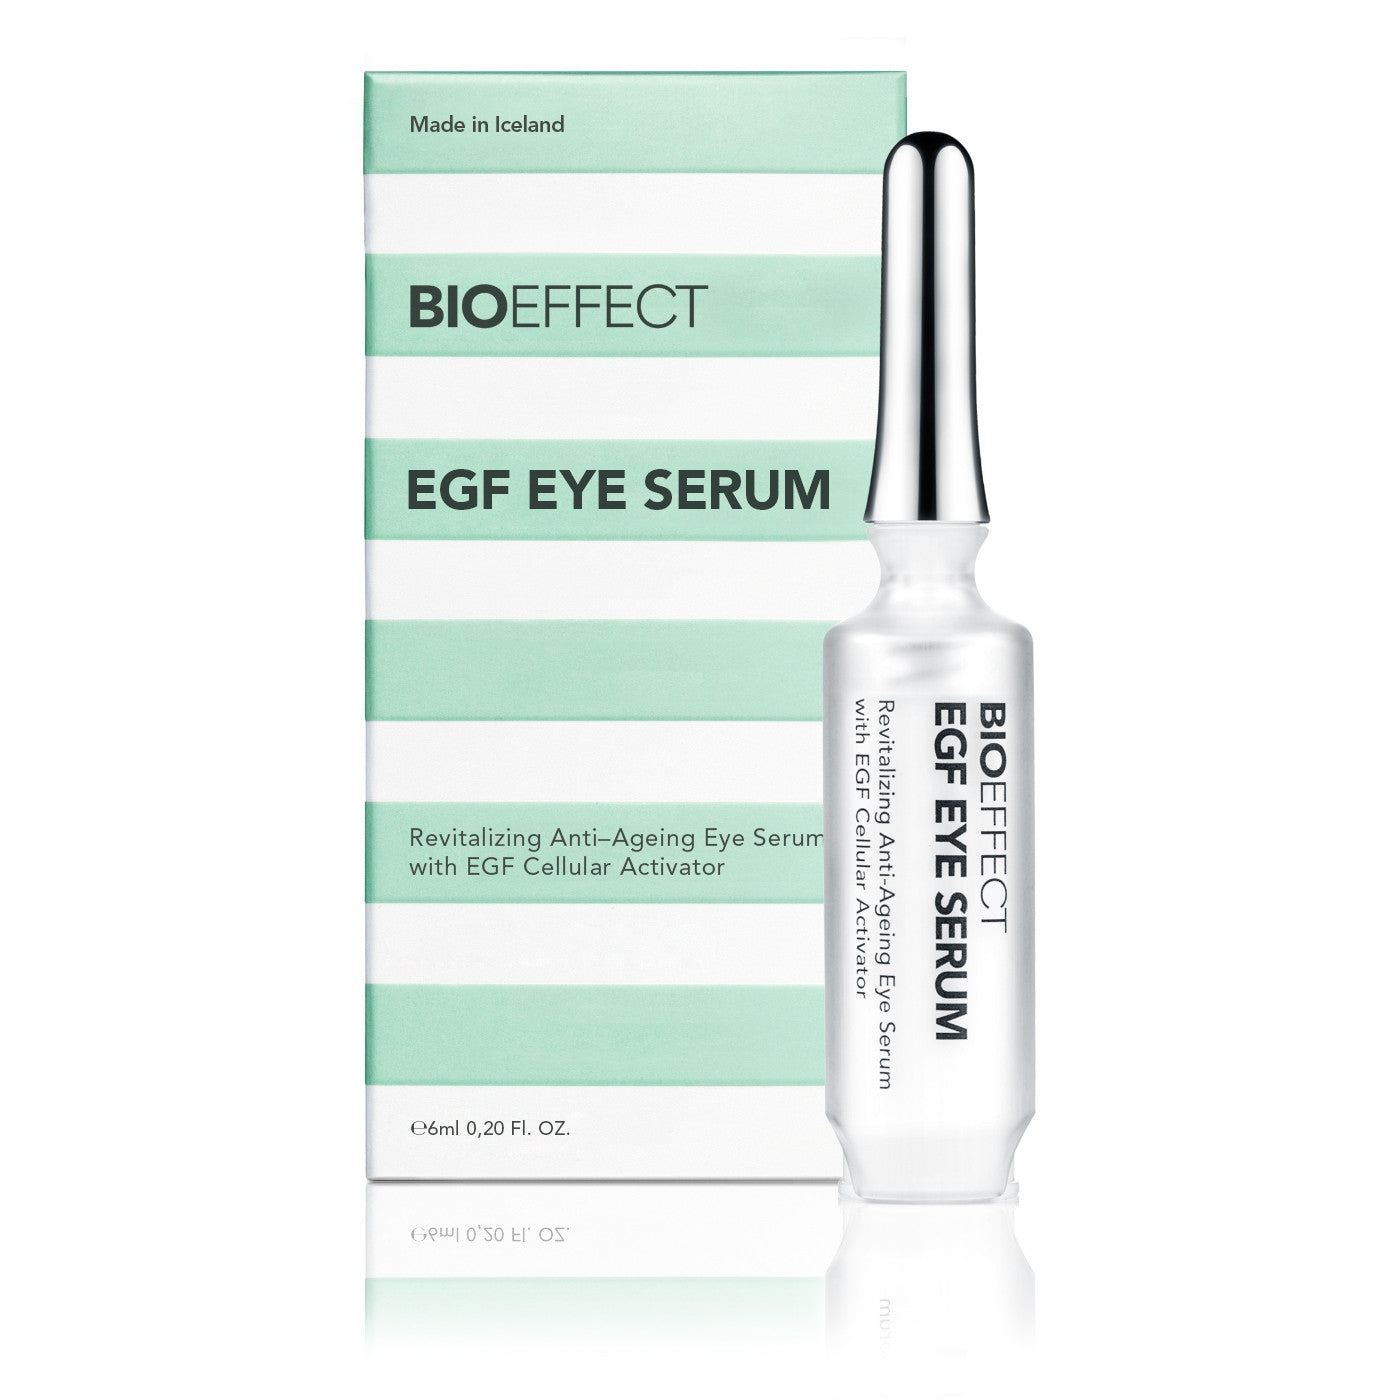 BIOEFFECT EYE SERUM